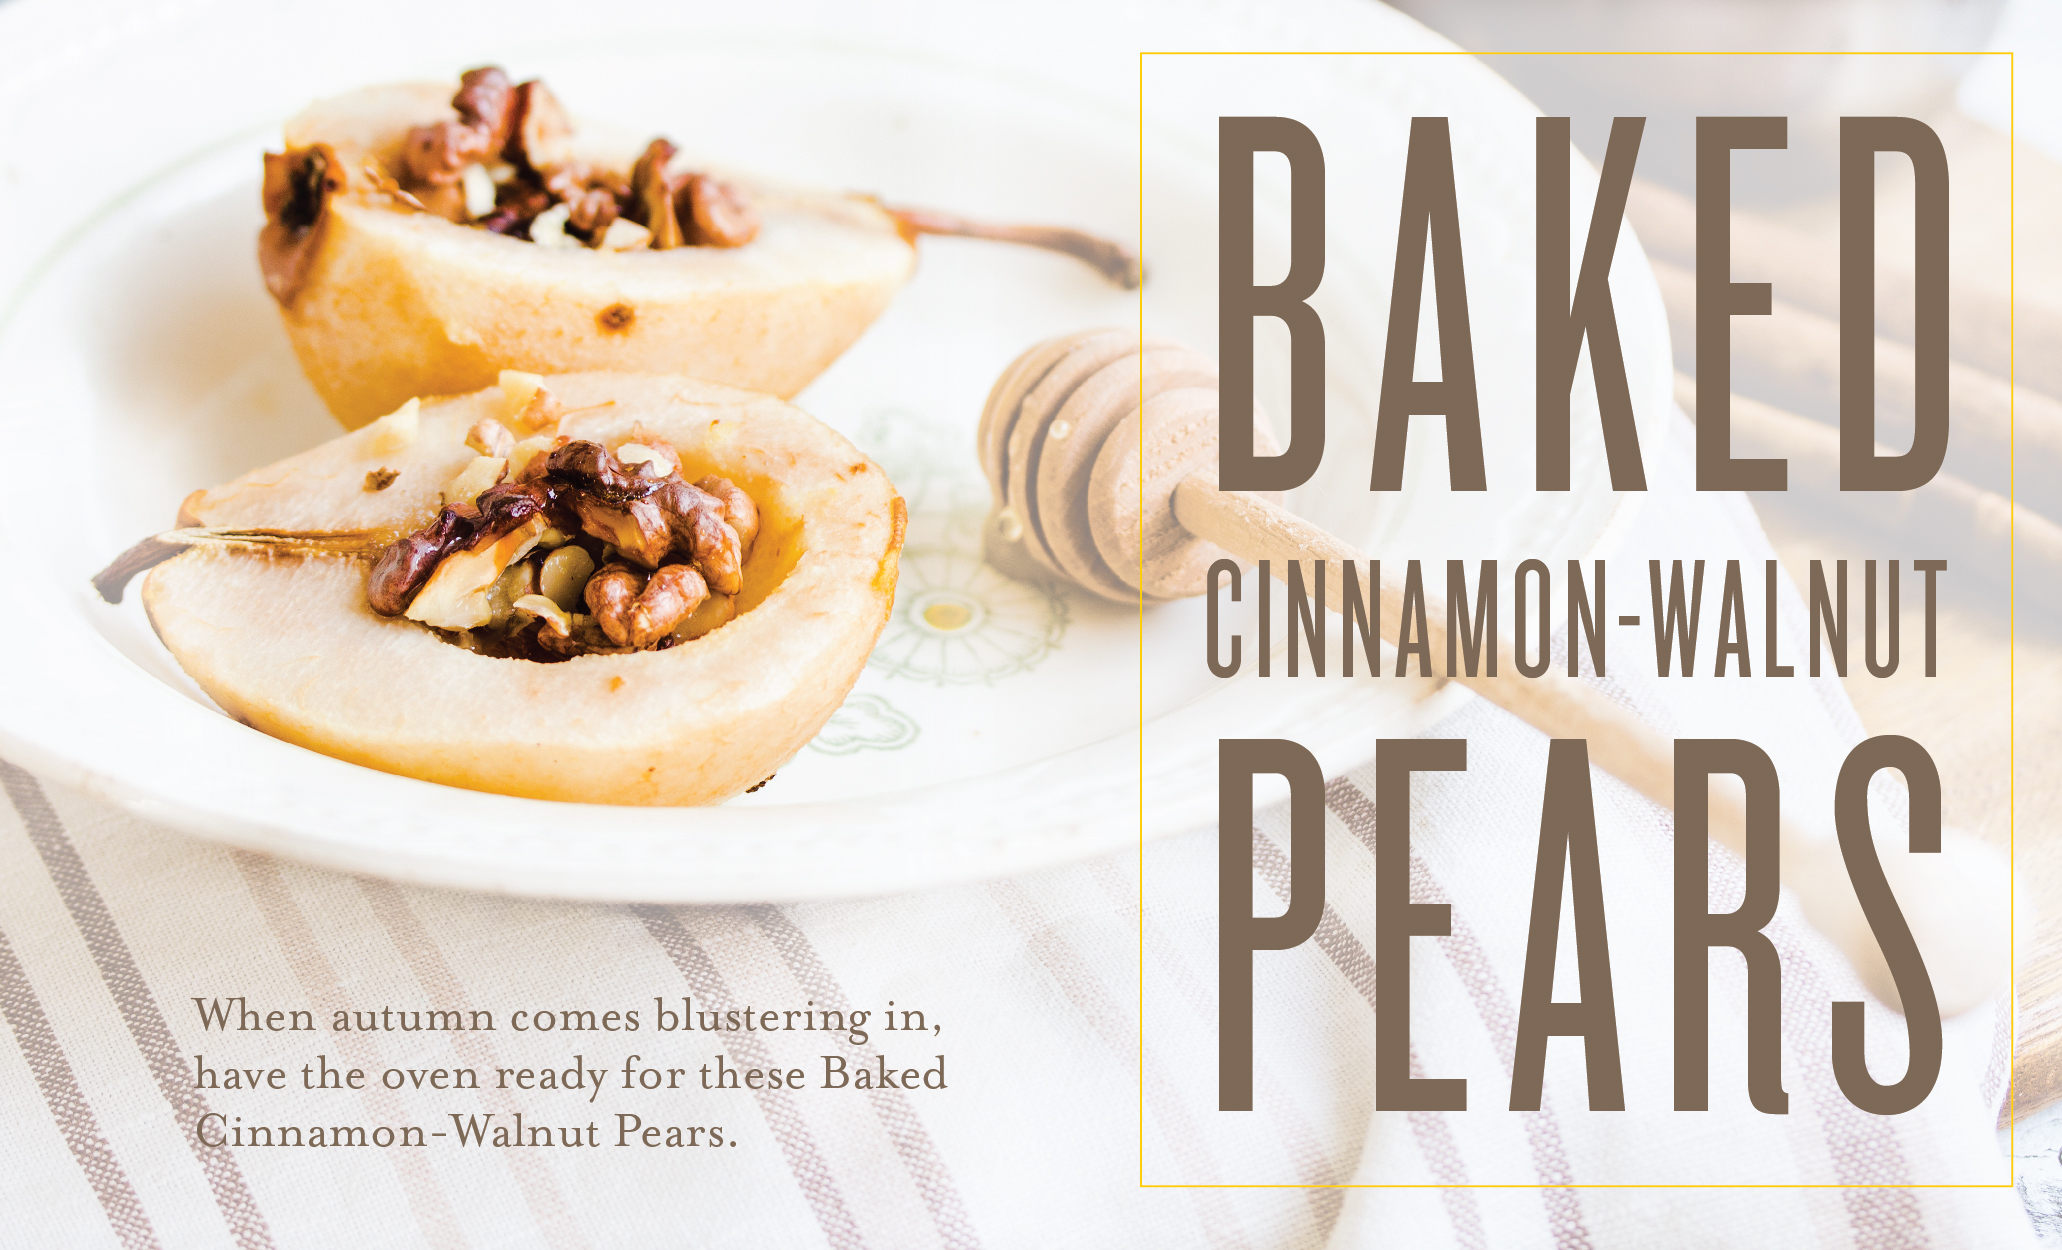 See more at  https://www.youngliving.com/blog/baked-cinnamon-walnut-pears/